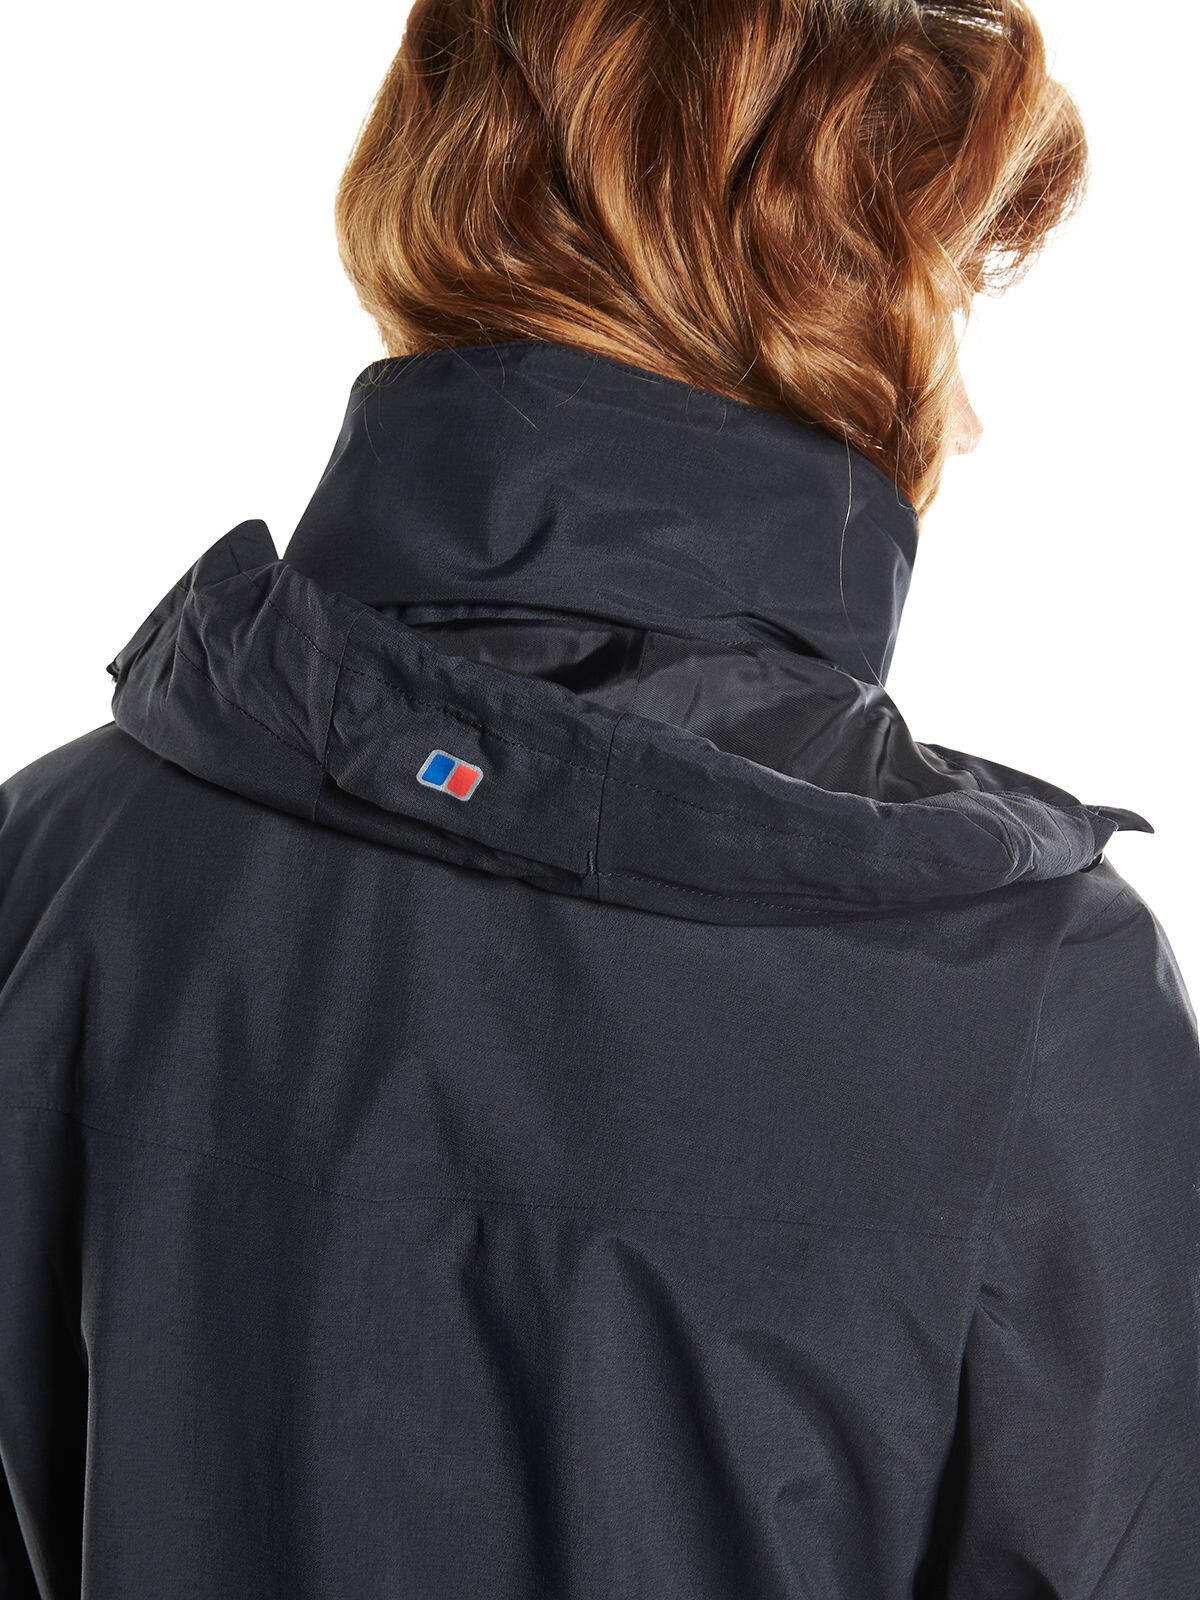 Berghaus Hillwalker 3In1 Jacket Damen blackblack